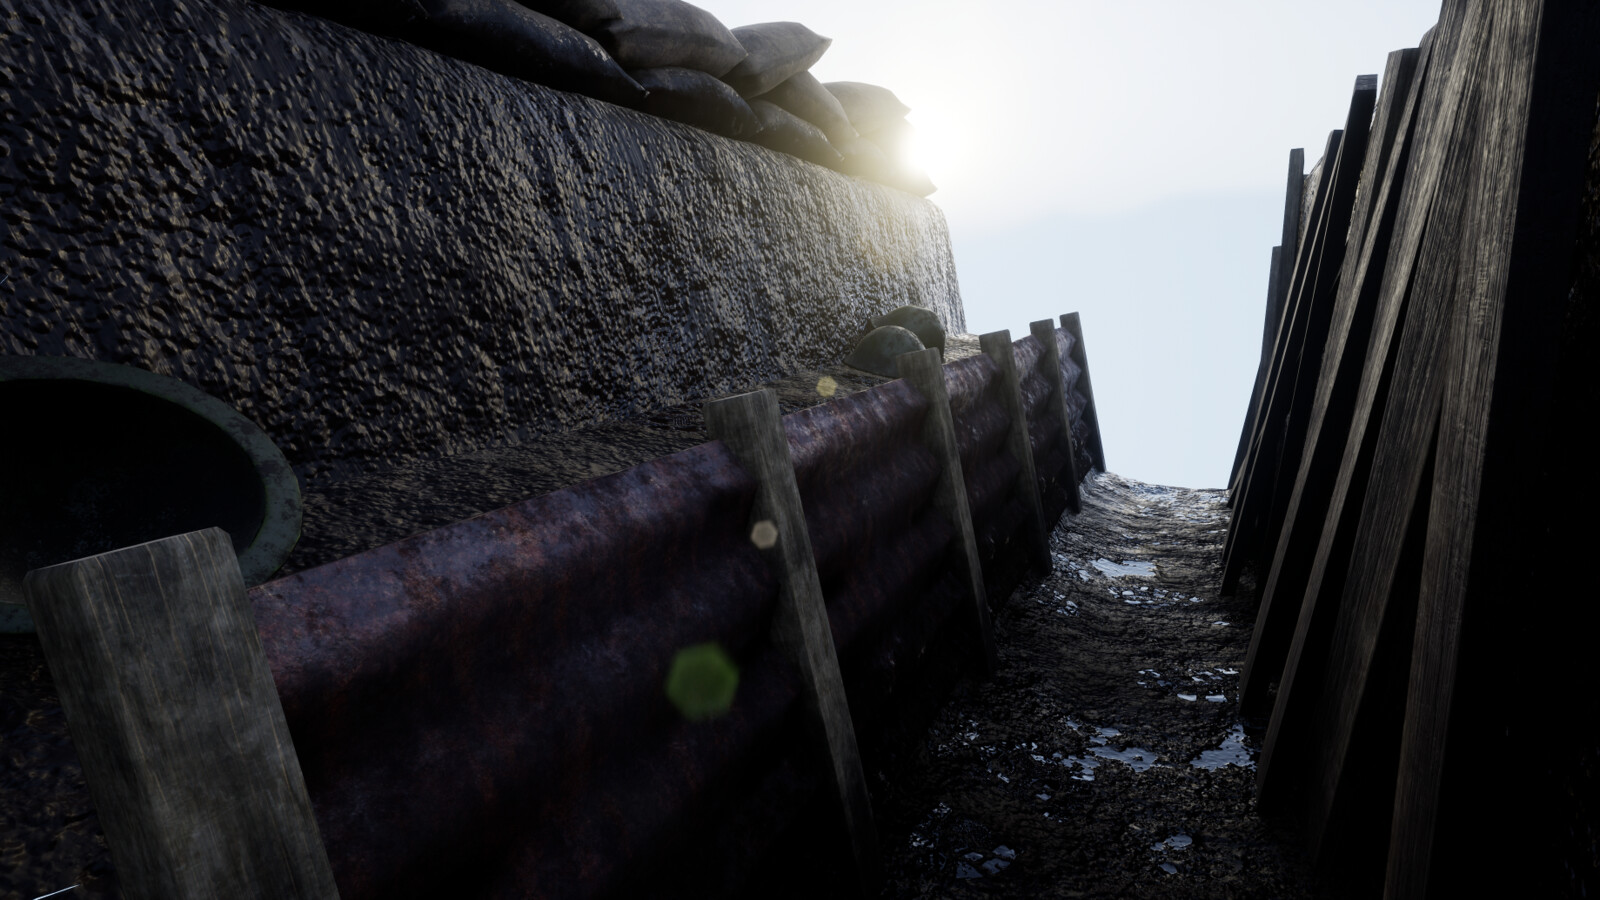 Inside the trench with rusted steel panels and leftover army helmets